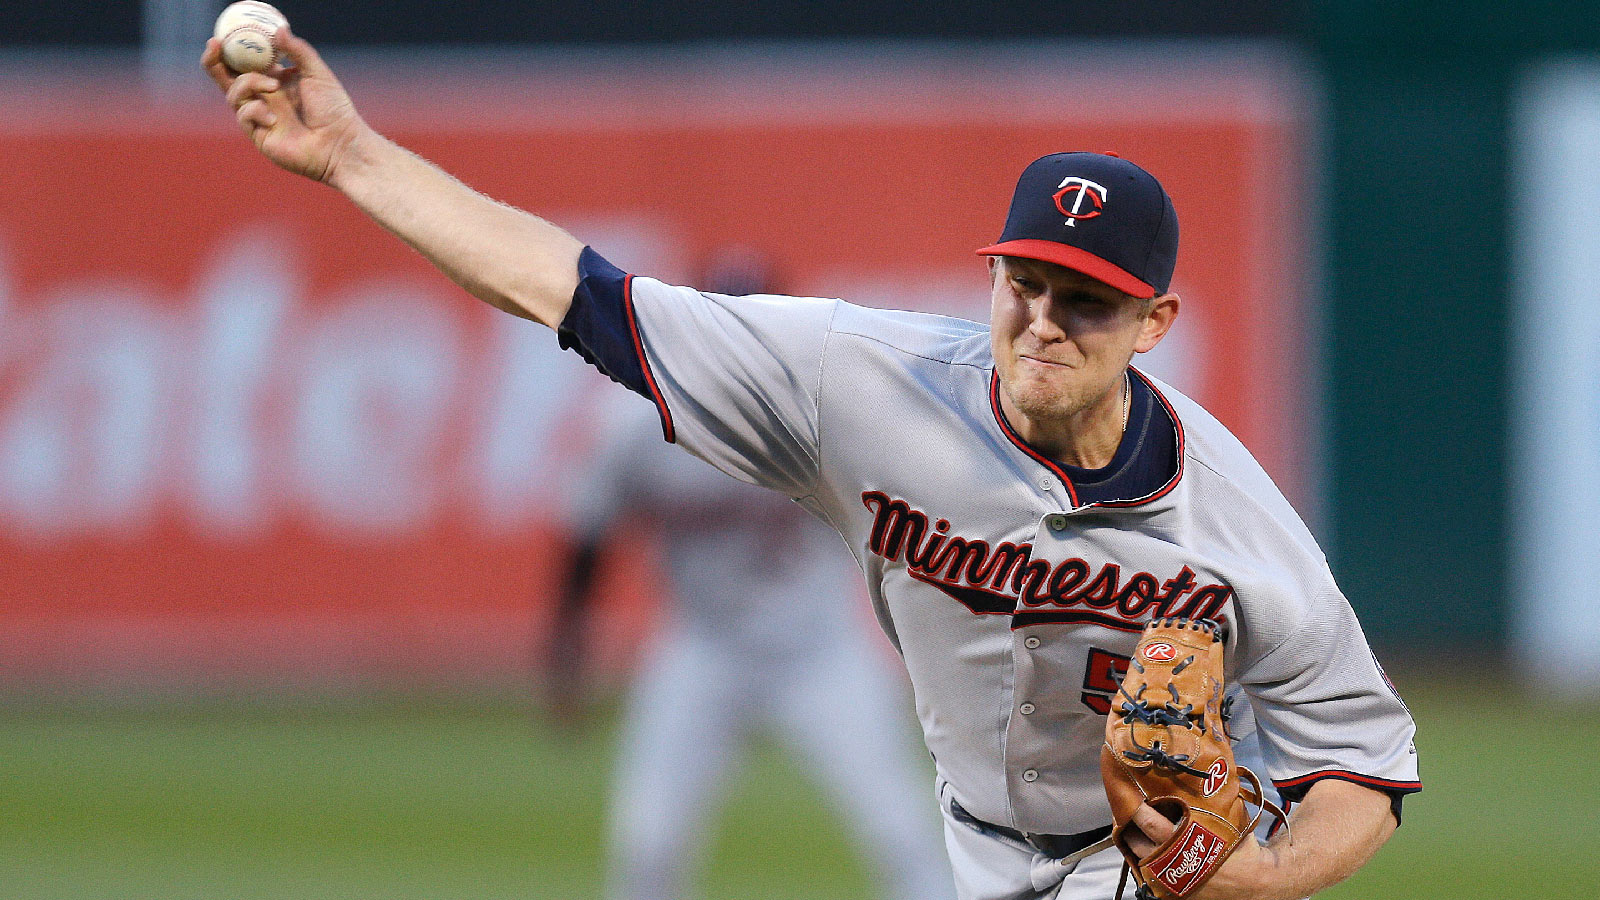 Preview: Twins vs. Braves